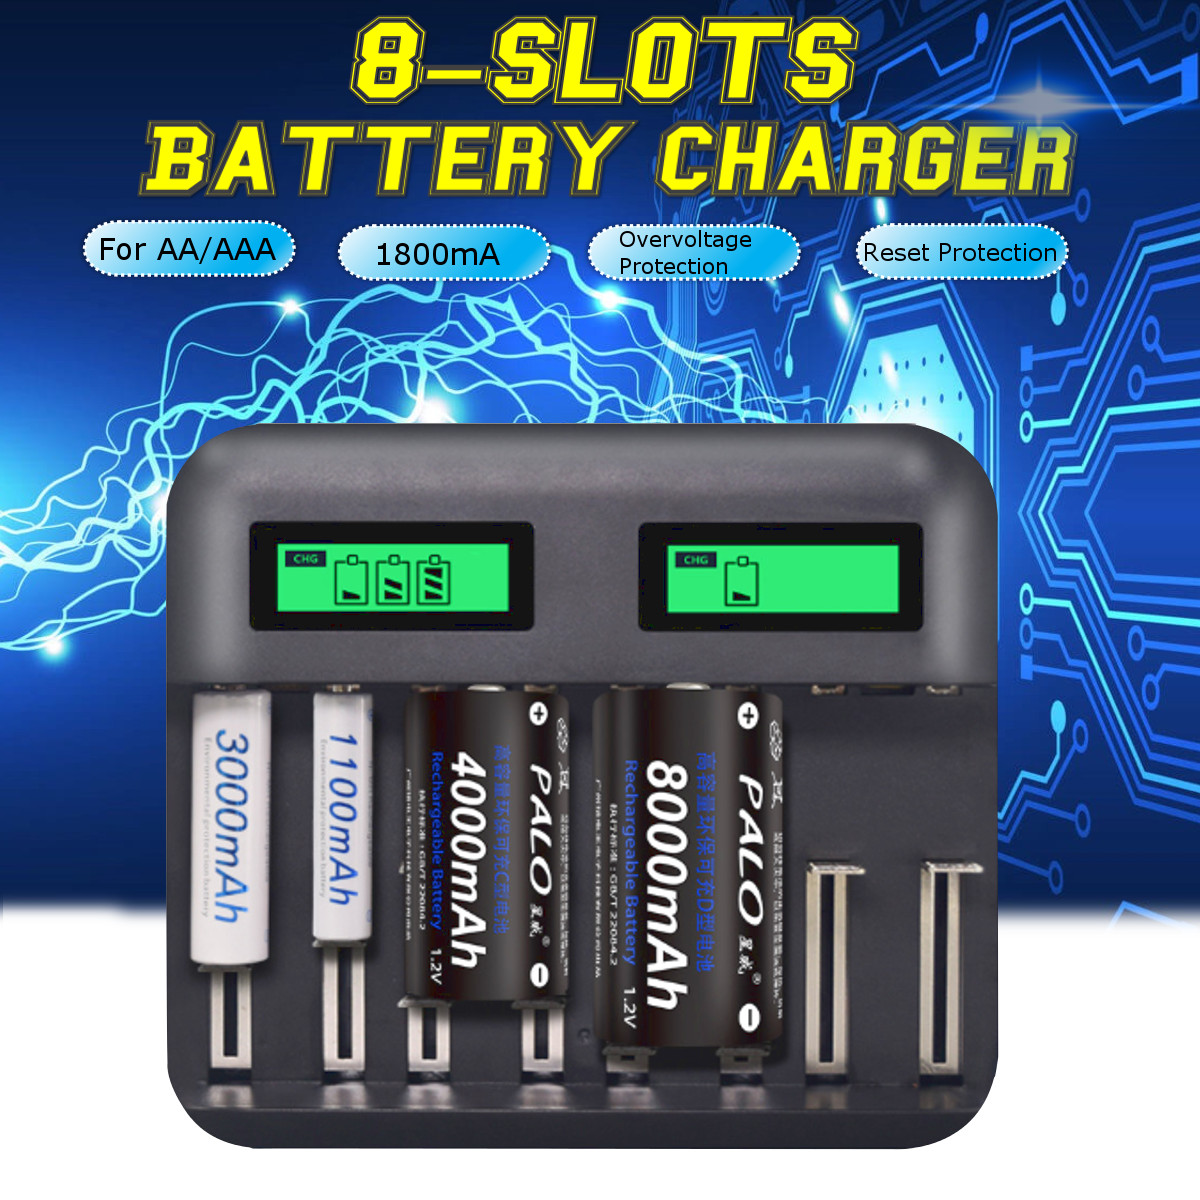 Qiilu 220V Car Battery Charger LCD Display Intelligent Pulse Repair Charger CN Plug